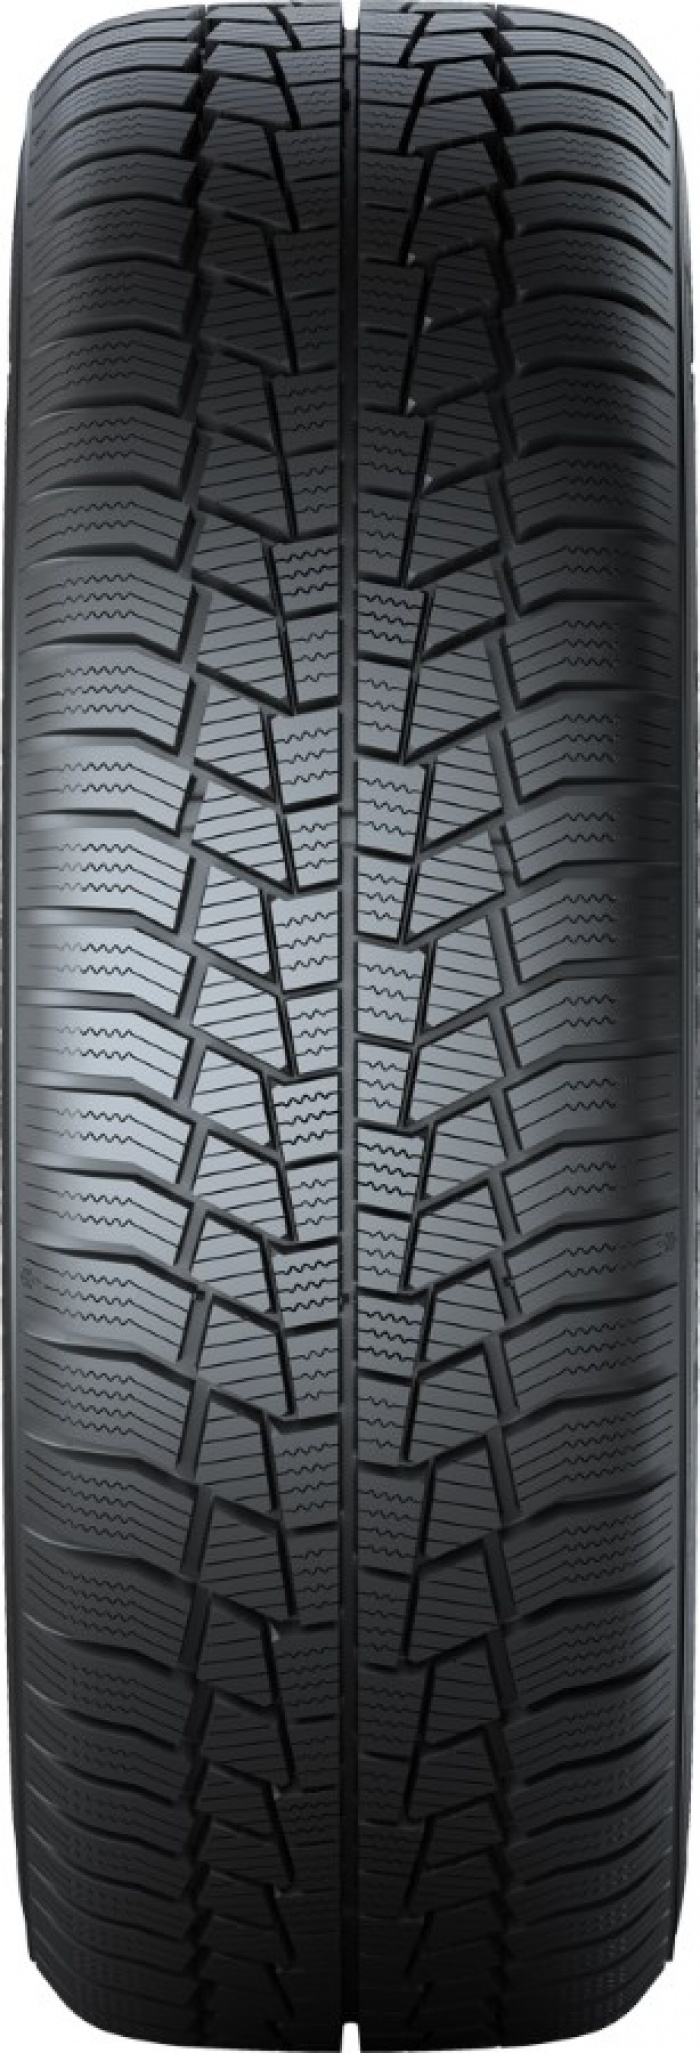 Gislaved Euro Frost 6 195/55 R15 85H  не шип